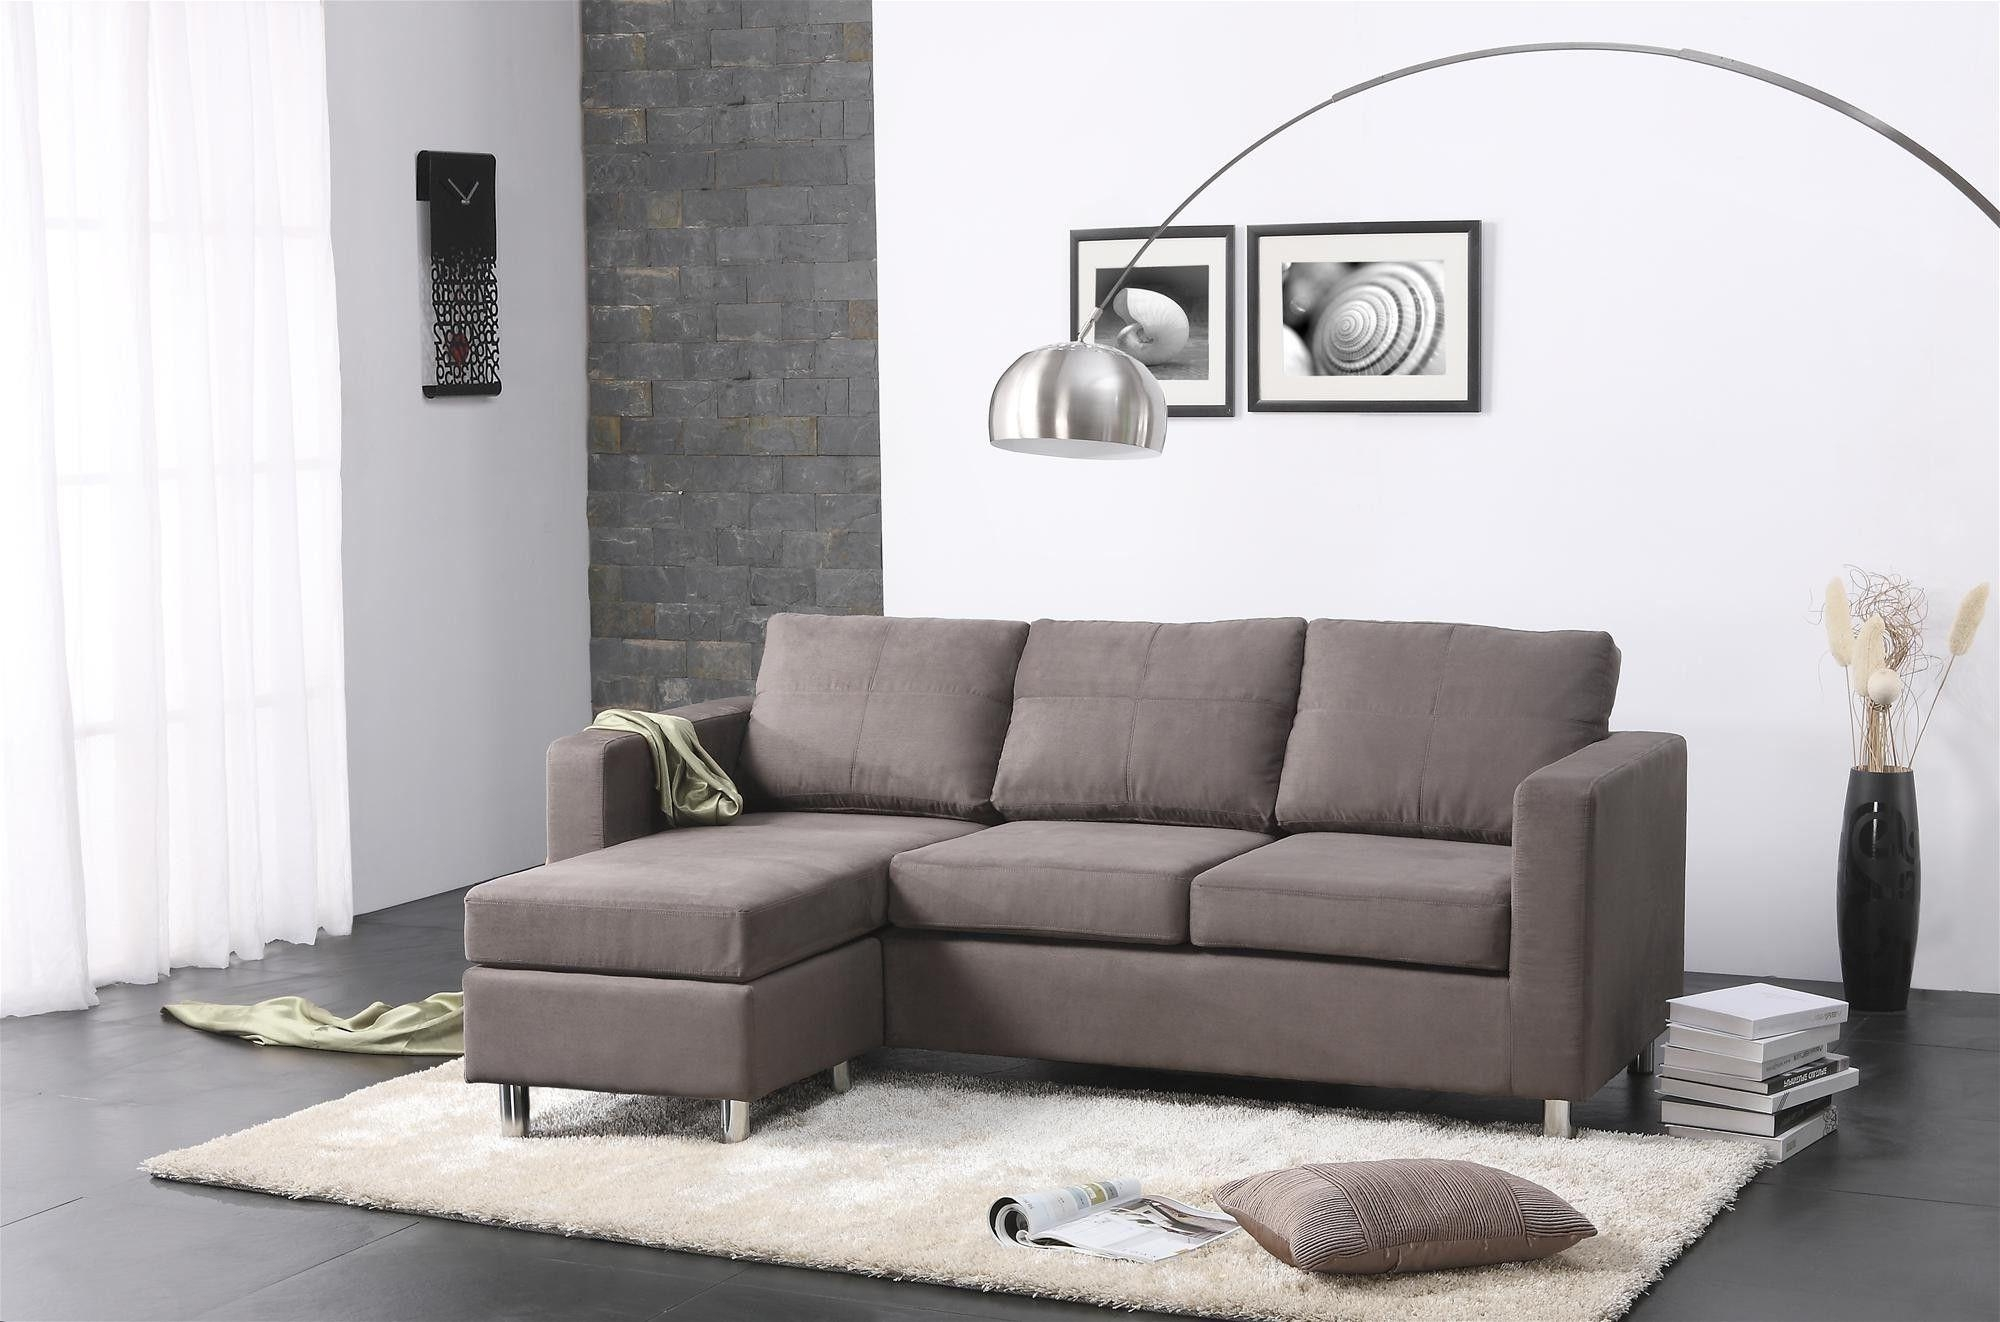 Opulent Ideas Couch For Small Living Room Exquisite Decoration 23 For Modern Sectional Sofas For Small Spaces (View 6 of 20)